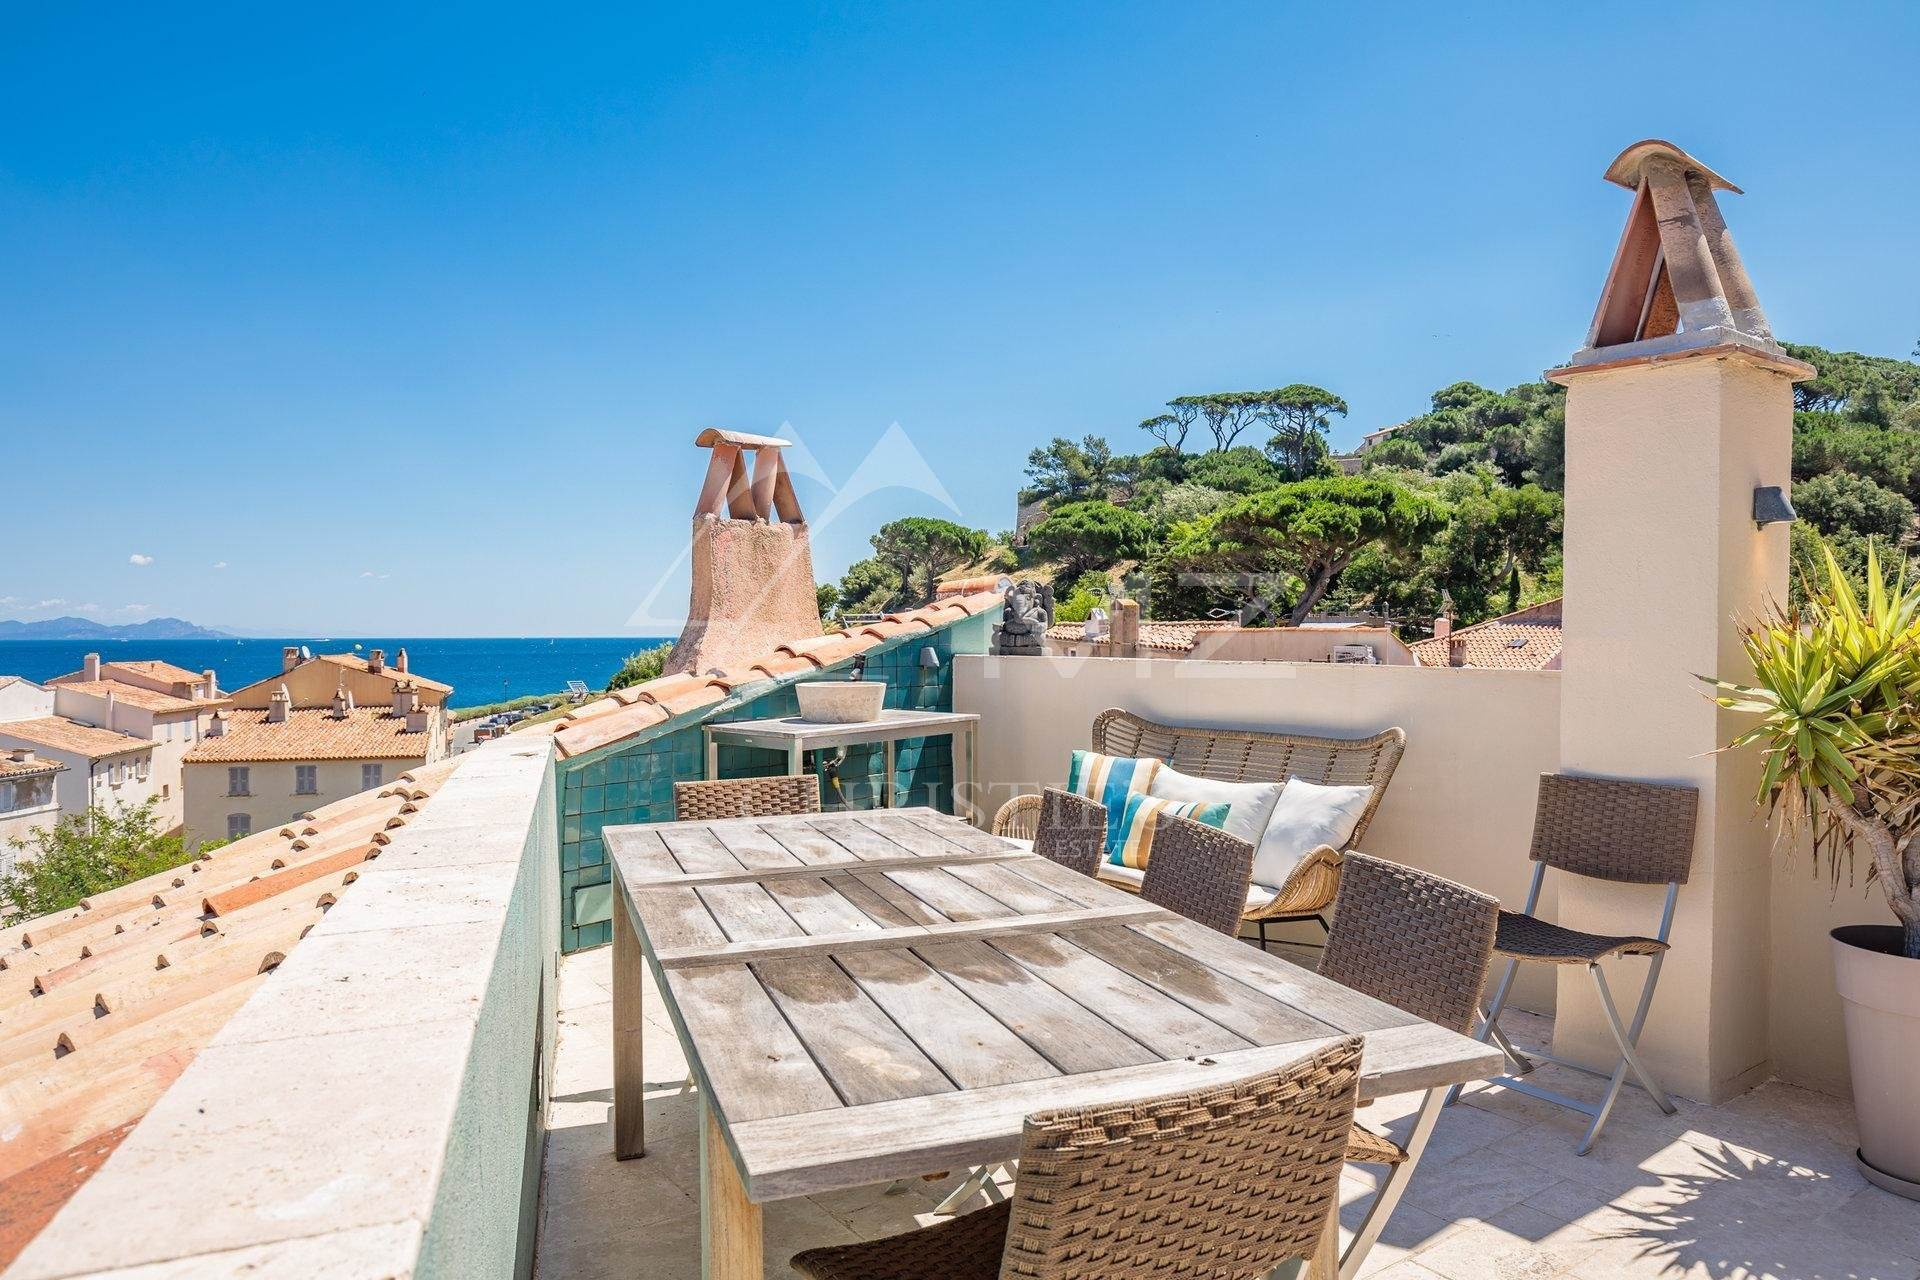 別墅 / 联排别墅 為 出售 在 Saint-Tropez - Town house with sea view Saint-Tropez, Var,83990 法國